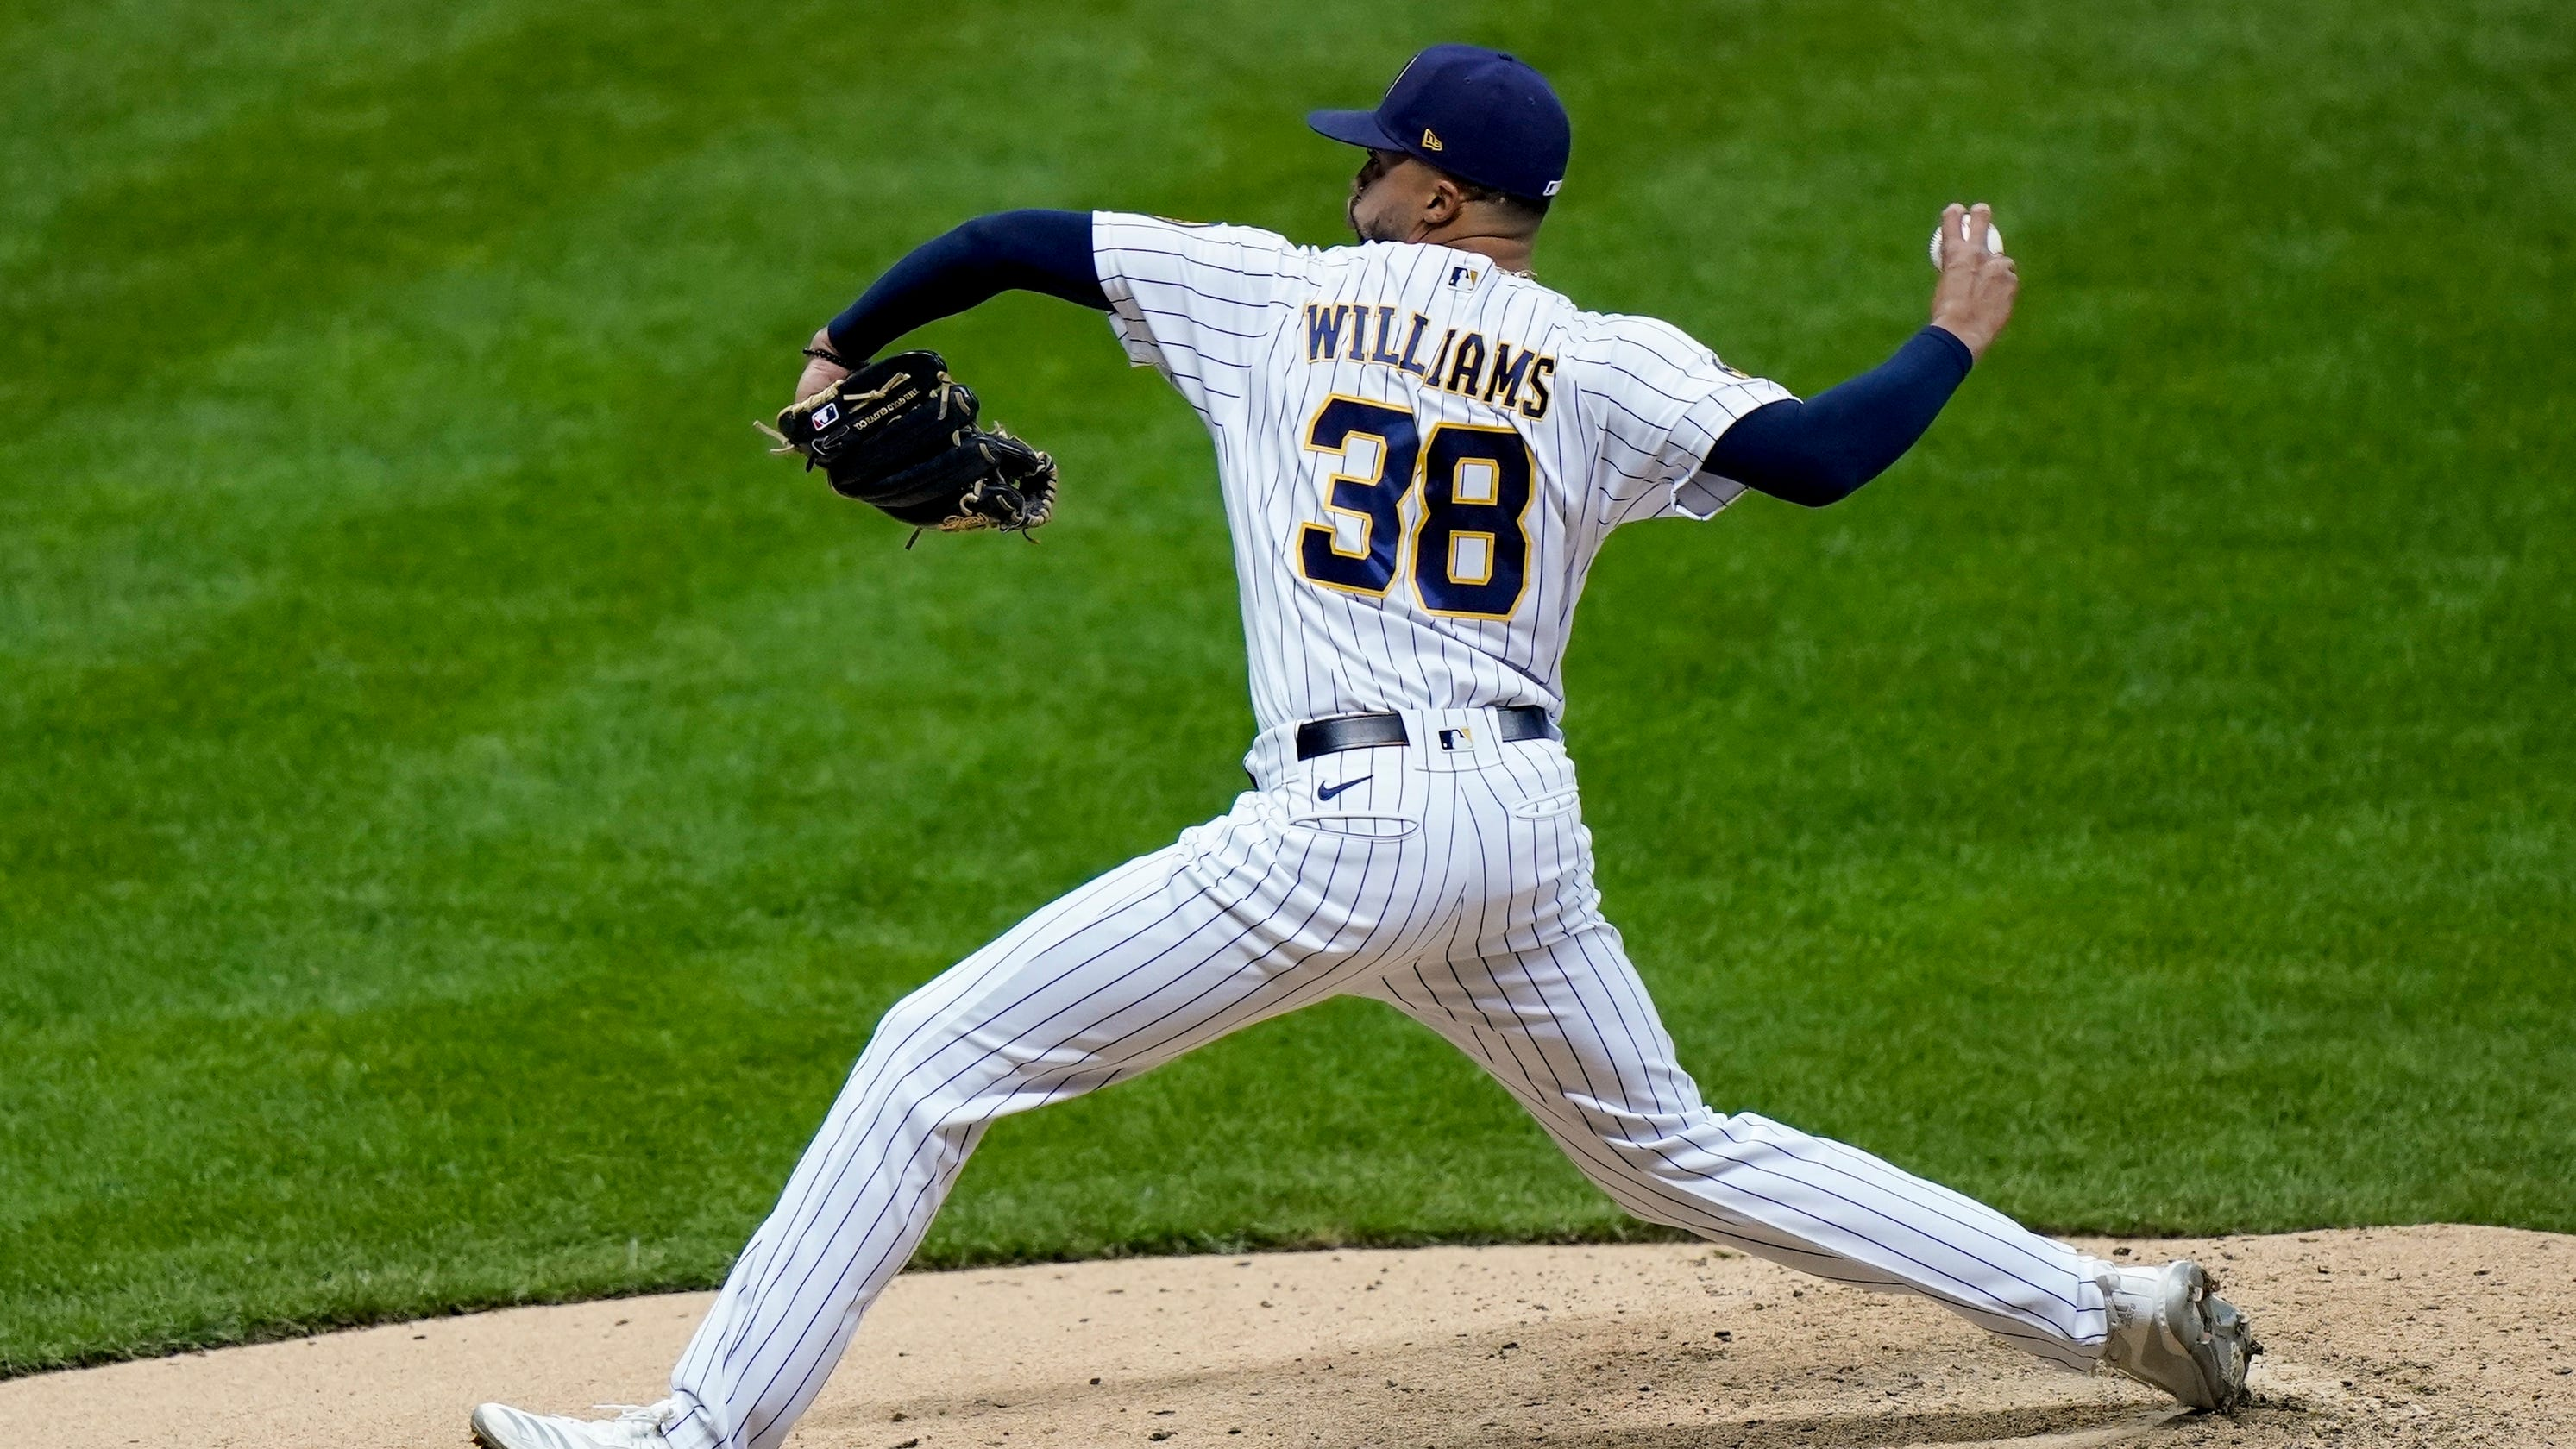 Devin Williams caps outstanding season by being named National League's reliever of the year